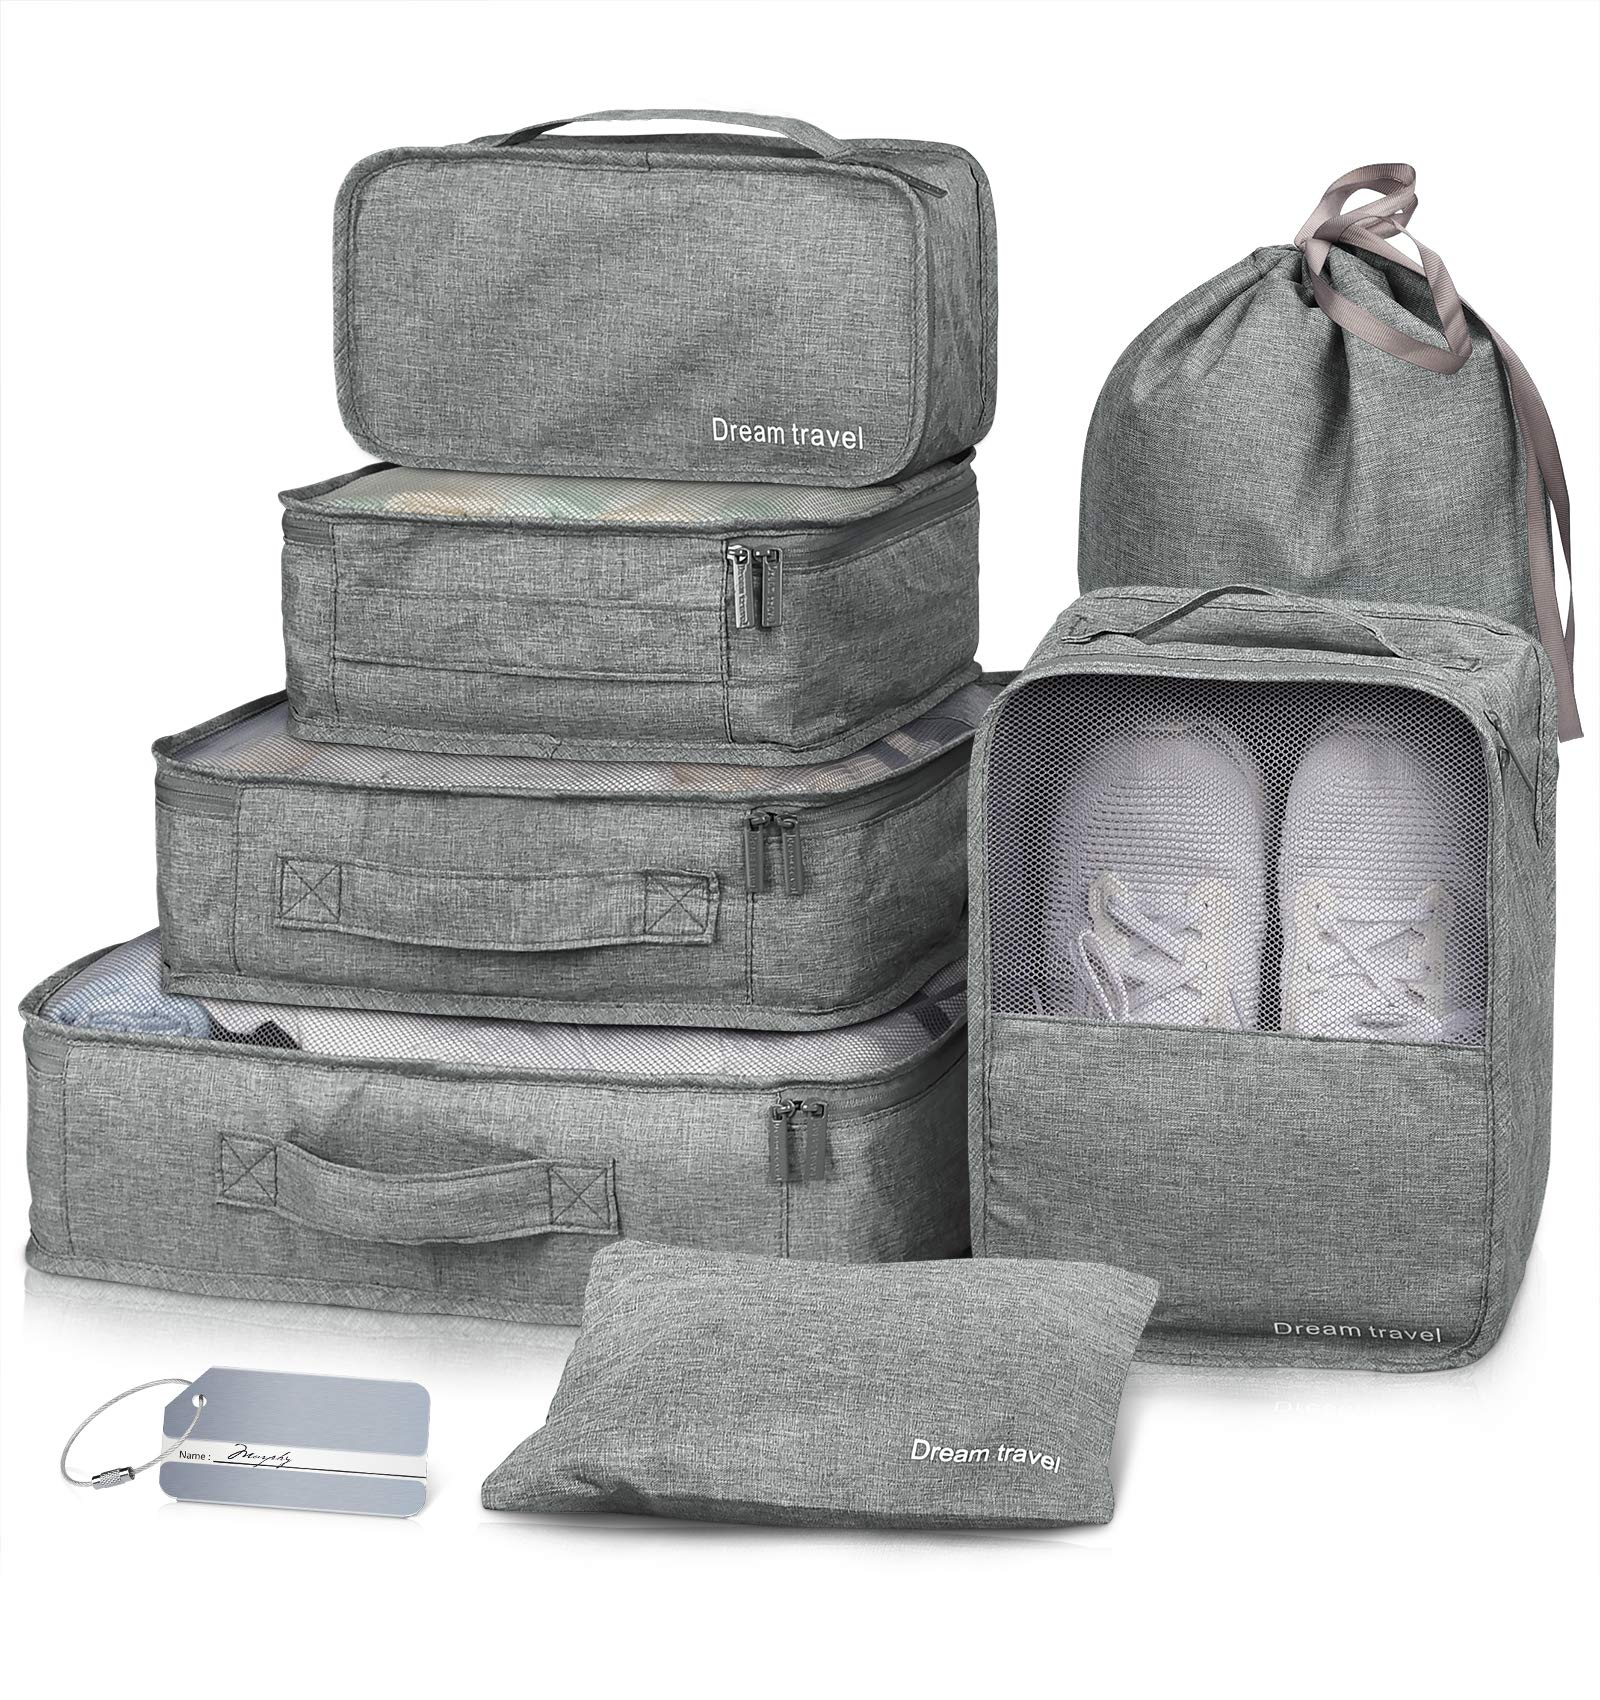 Packing Cubes VAGREEZ 7 Pcs Travel Luggage Packing Organizers Set with Laundry Bag (Grey) by VAGREEZ